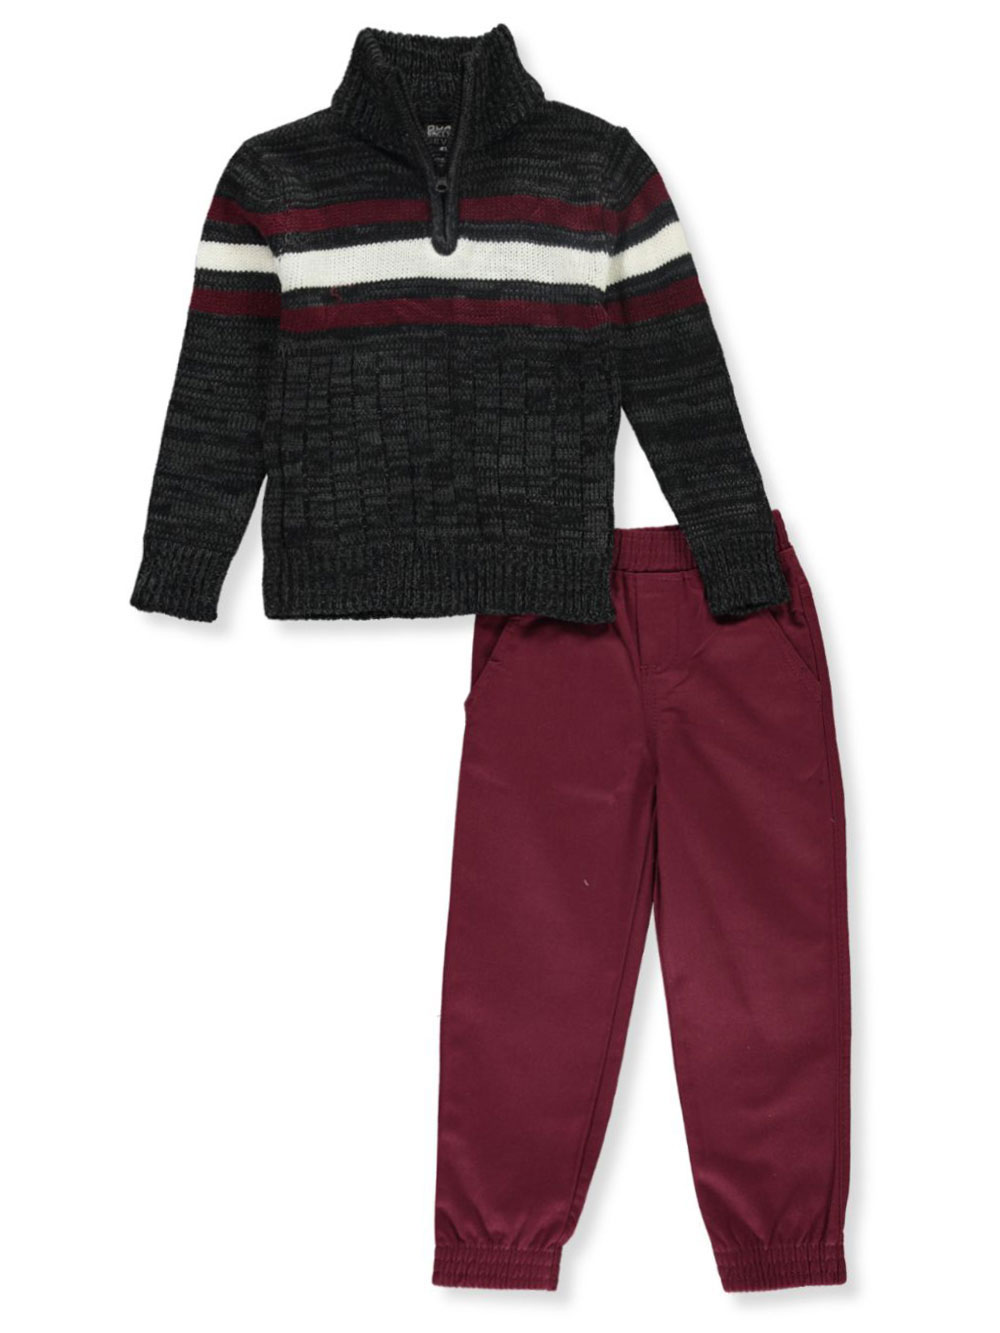 Boys Navy and Multicolor Pant Sets